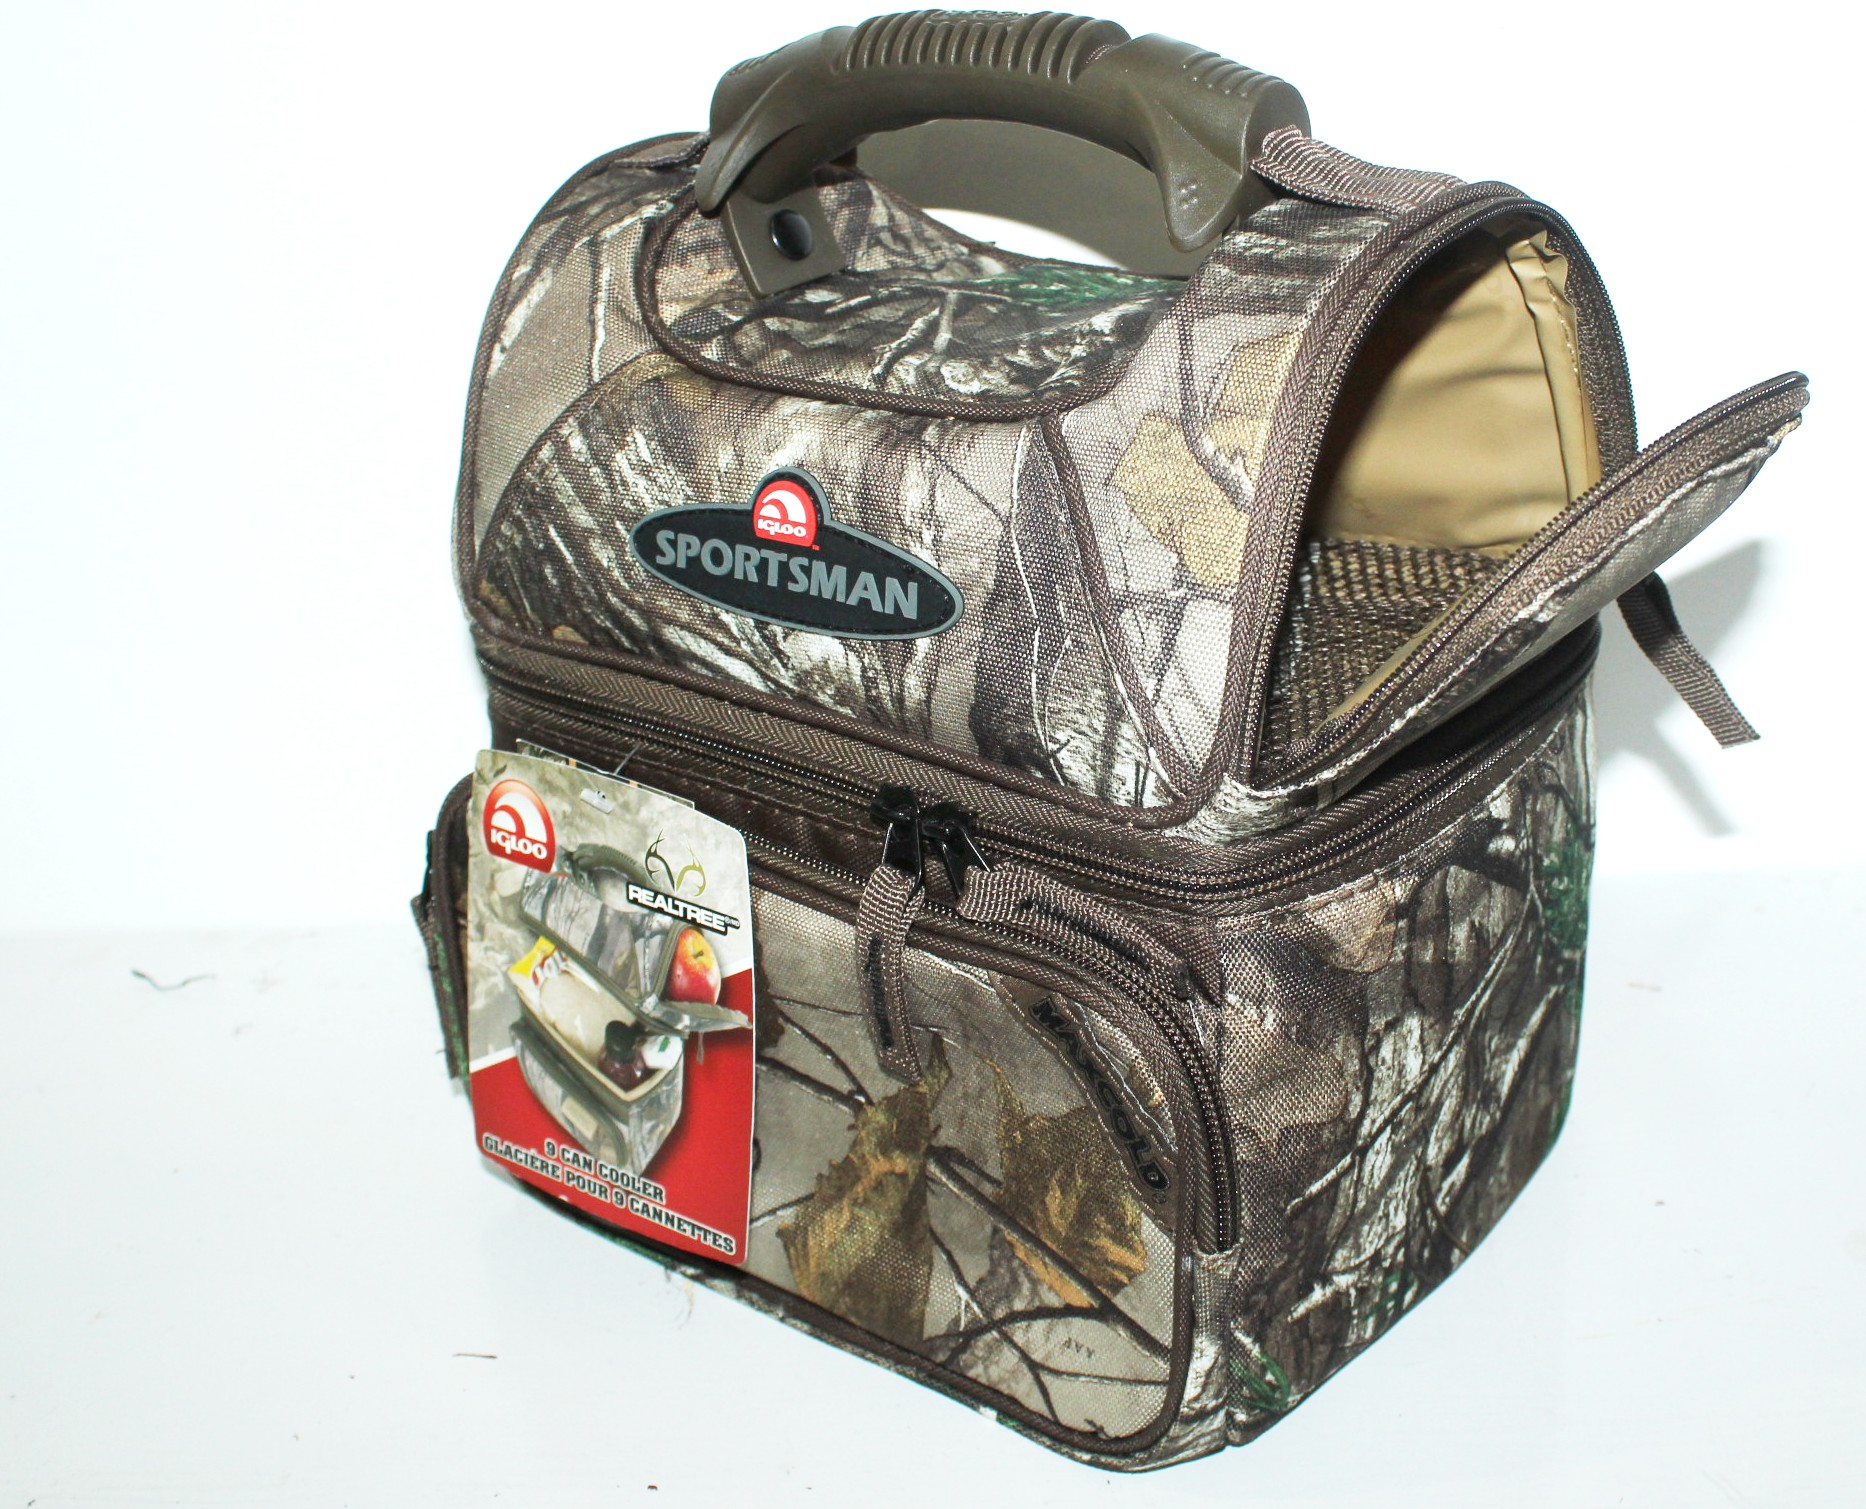 igloo coolers - since For over 70 years, Igloo has been the worldwide leader in ice chest coolers, cooler bags, lunch boxes, and hydration systems. We offer quality, durable, and innovative products to keep your drinks cold and your food fresh on your next adventure.